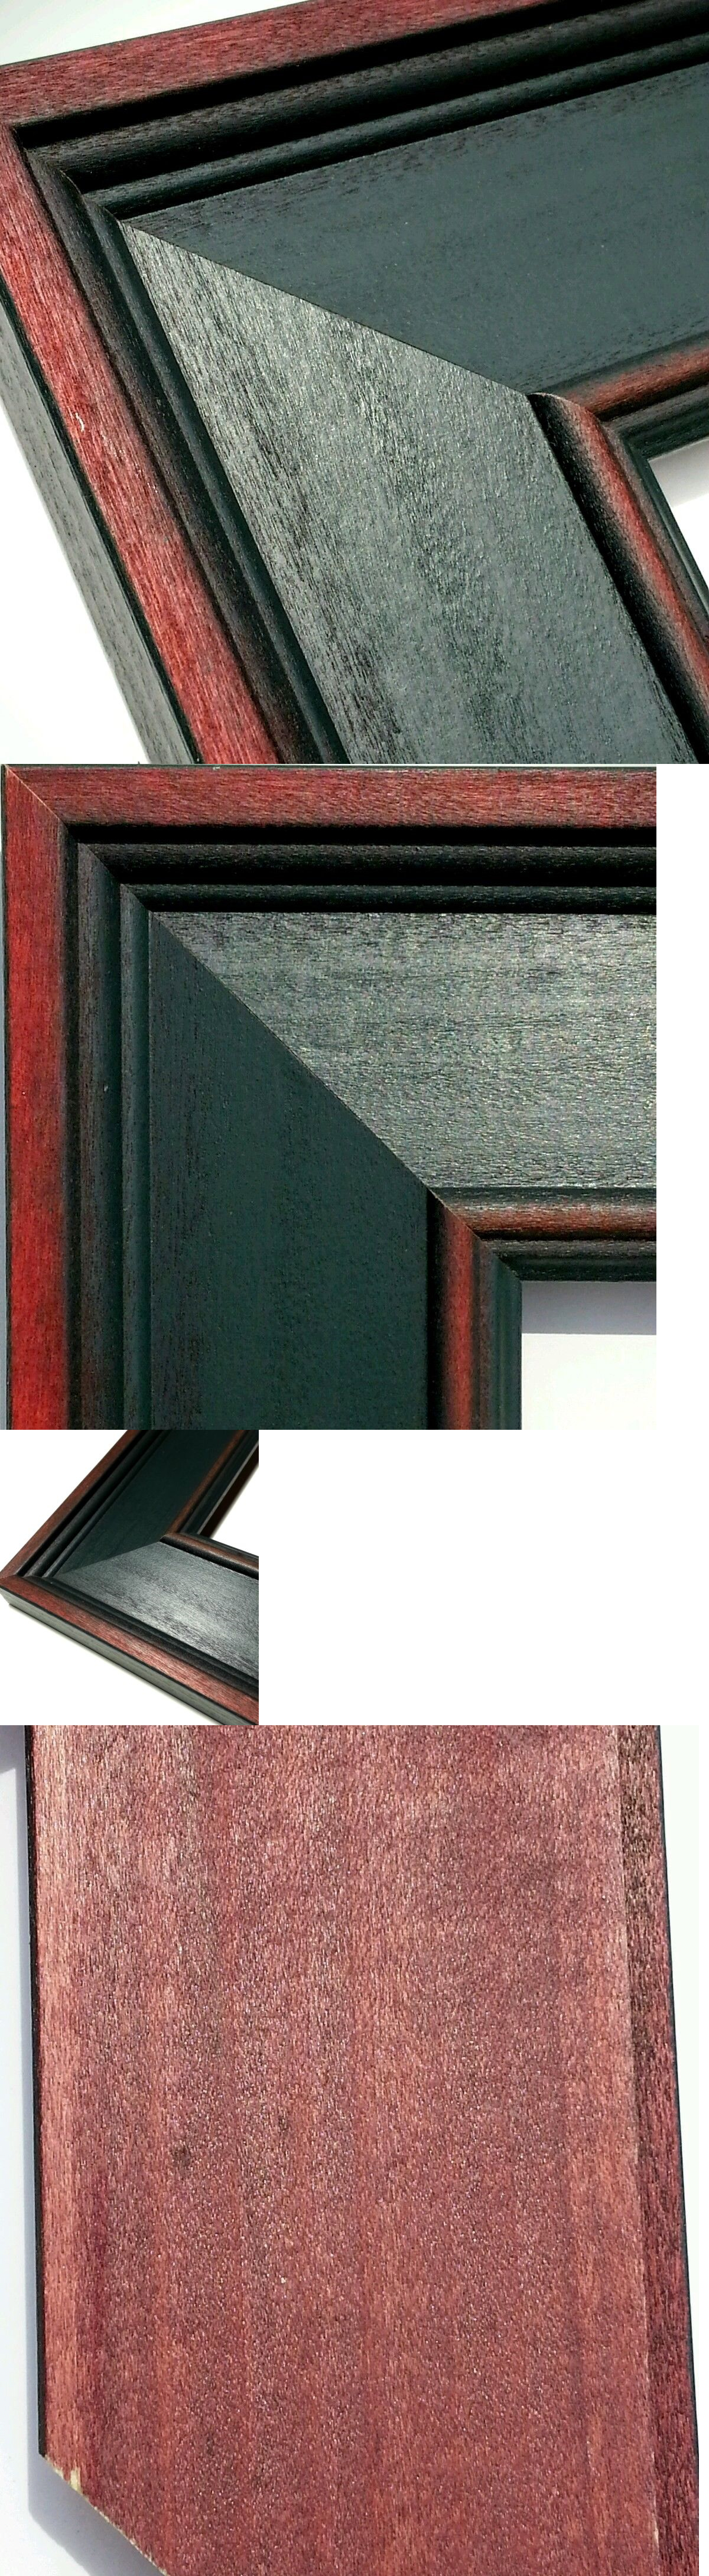 Frames and Supplies 37575: 18 Ft - Wide Wood Picture Frame Moulding ...